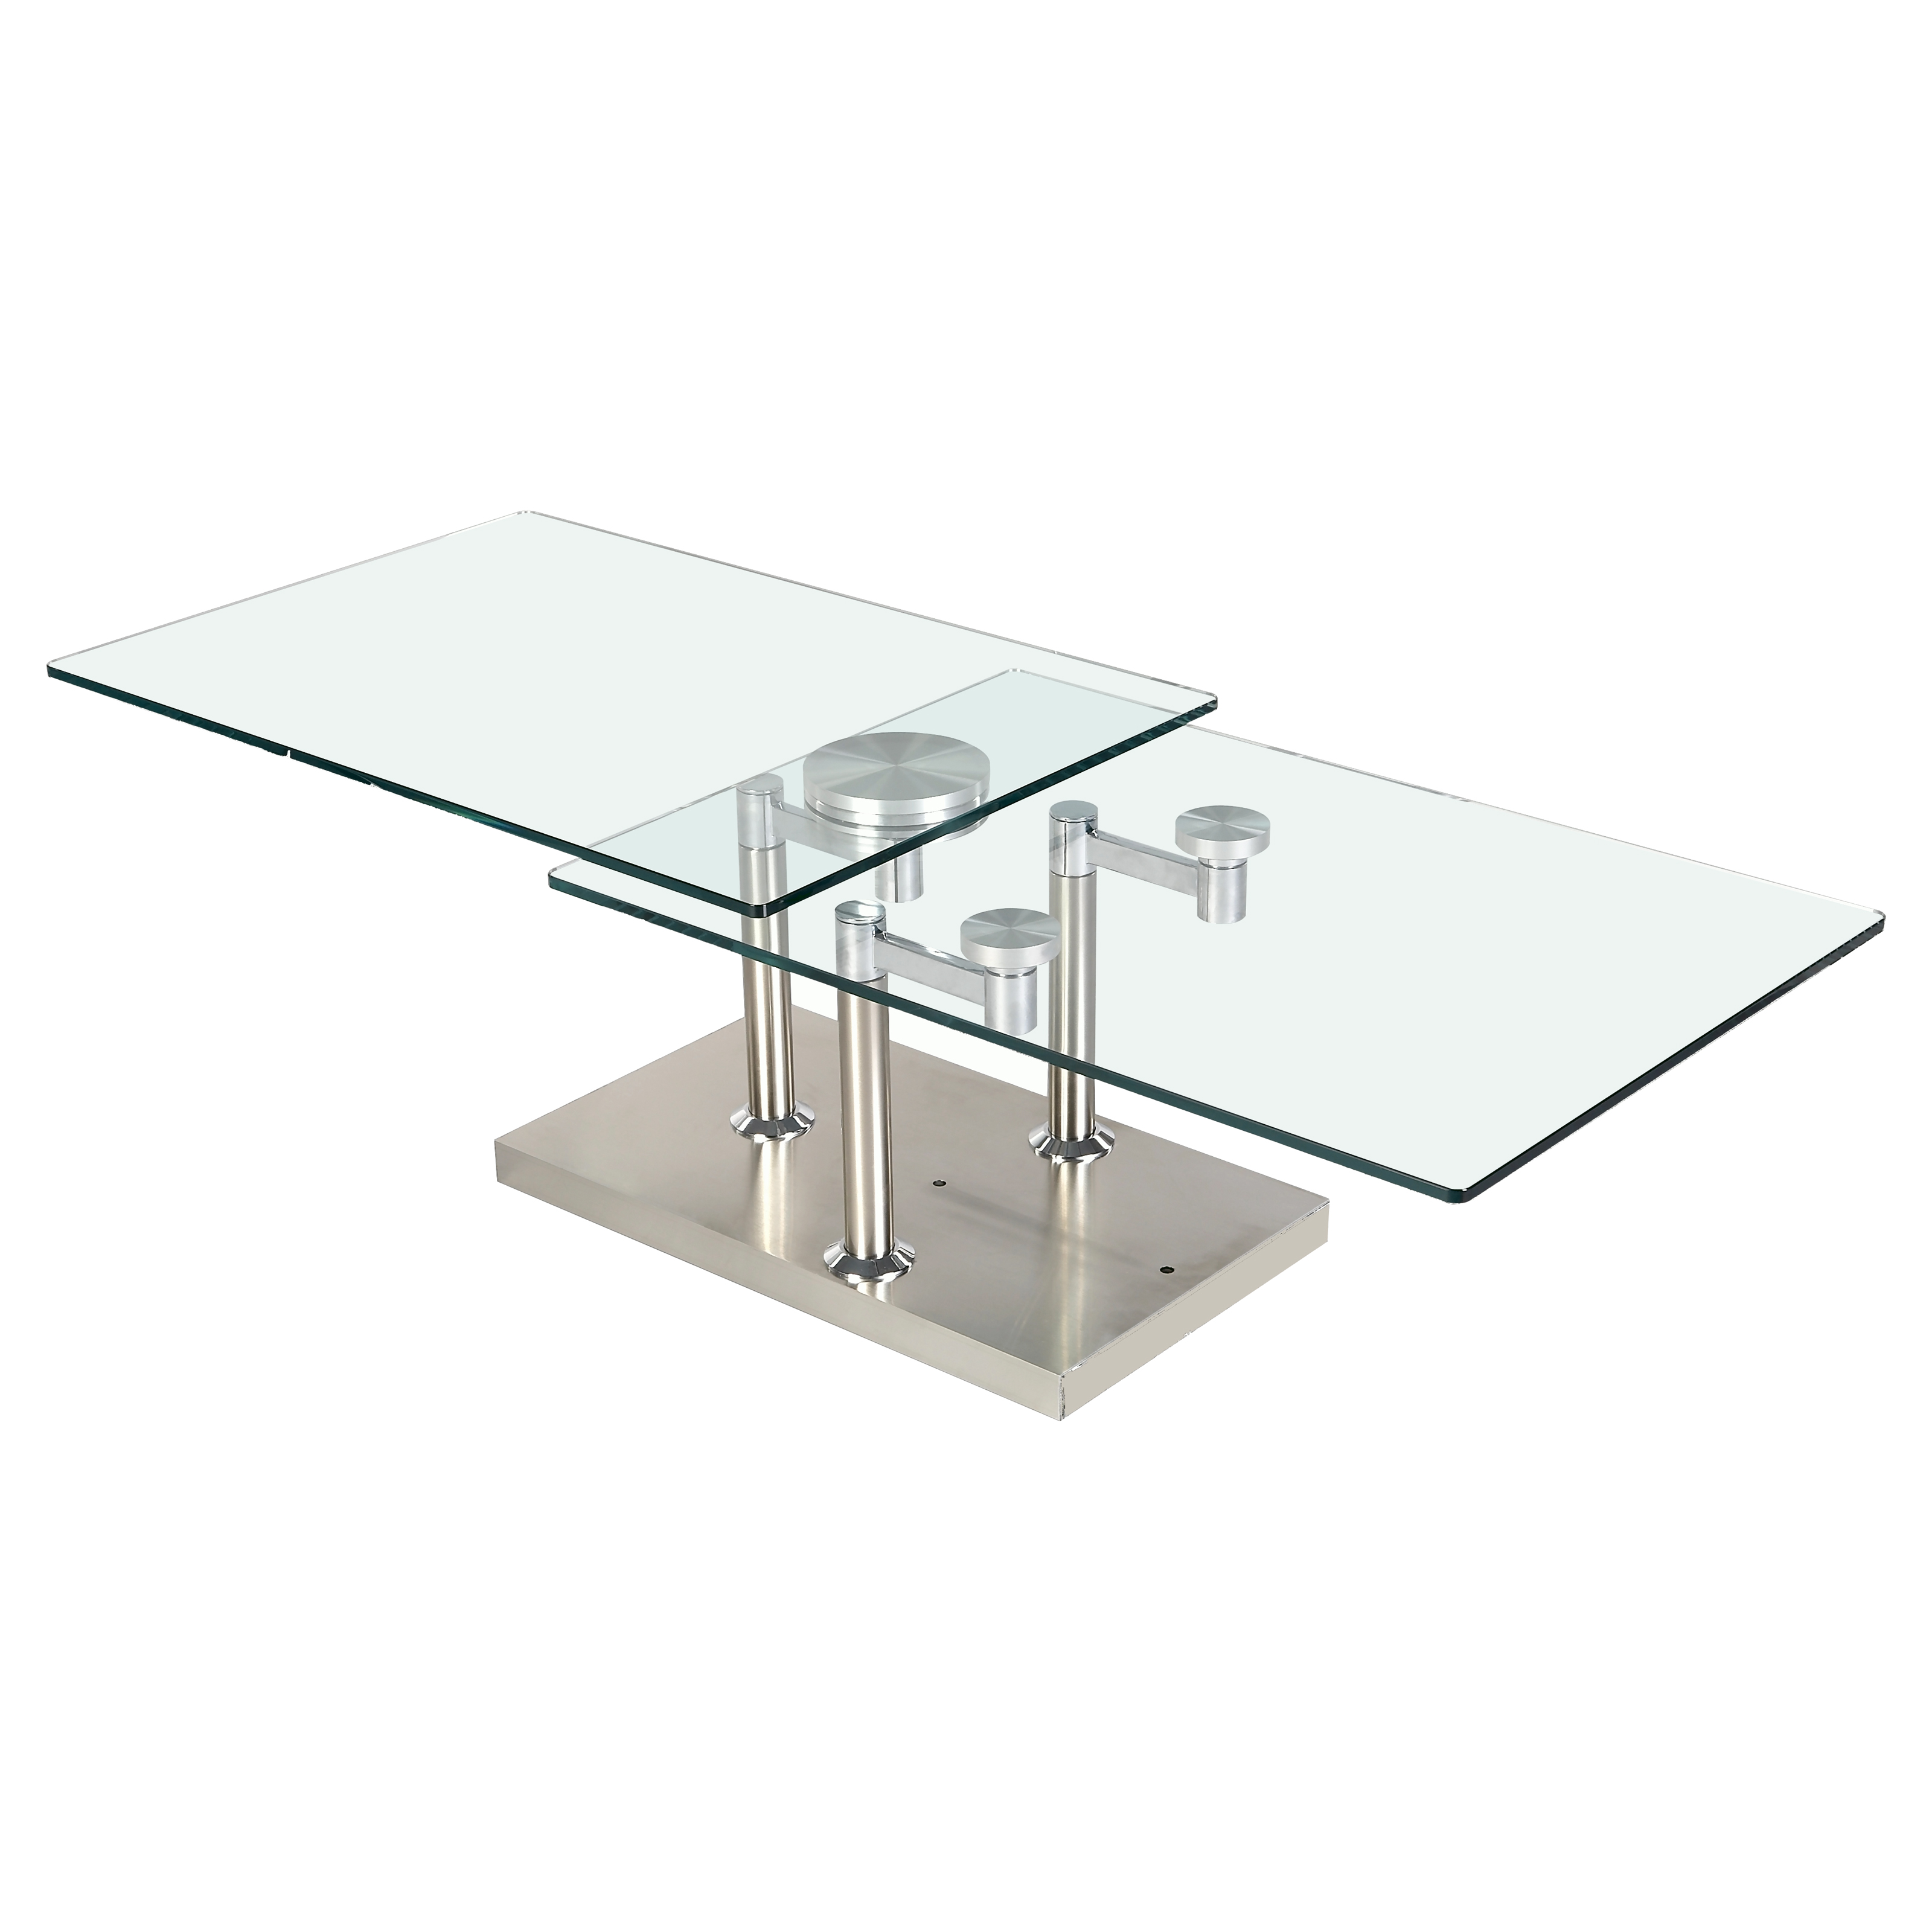 3 Way Motion Glass Square Coffee Table